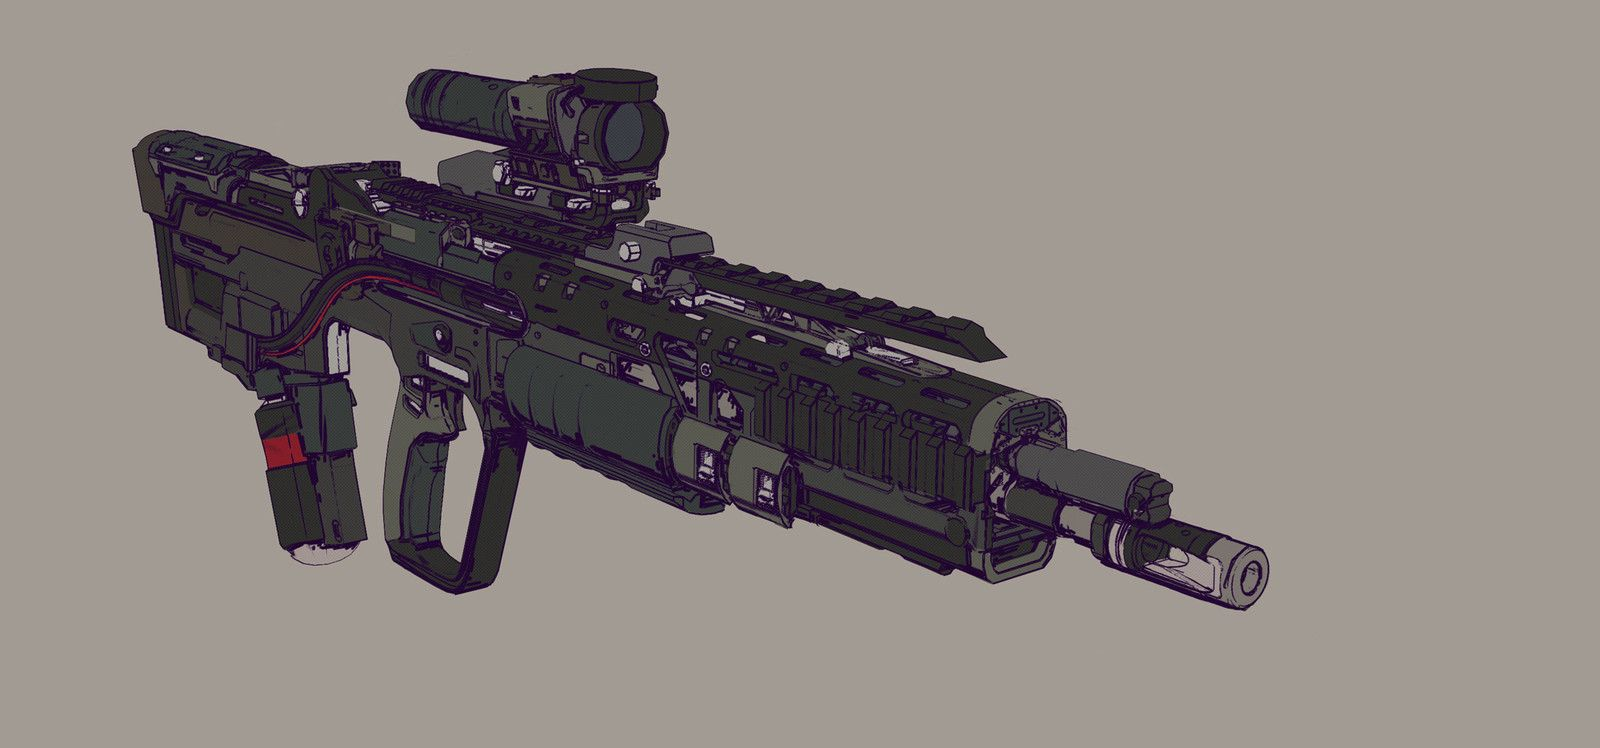 Pin By Adrian Campos On Weapons